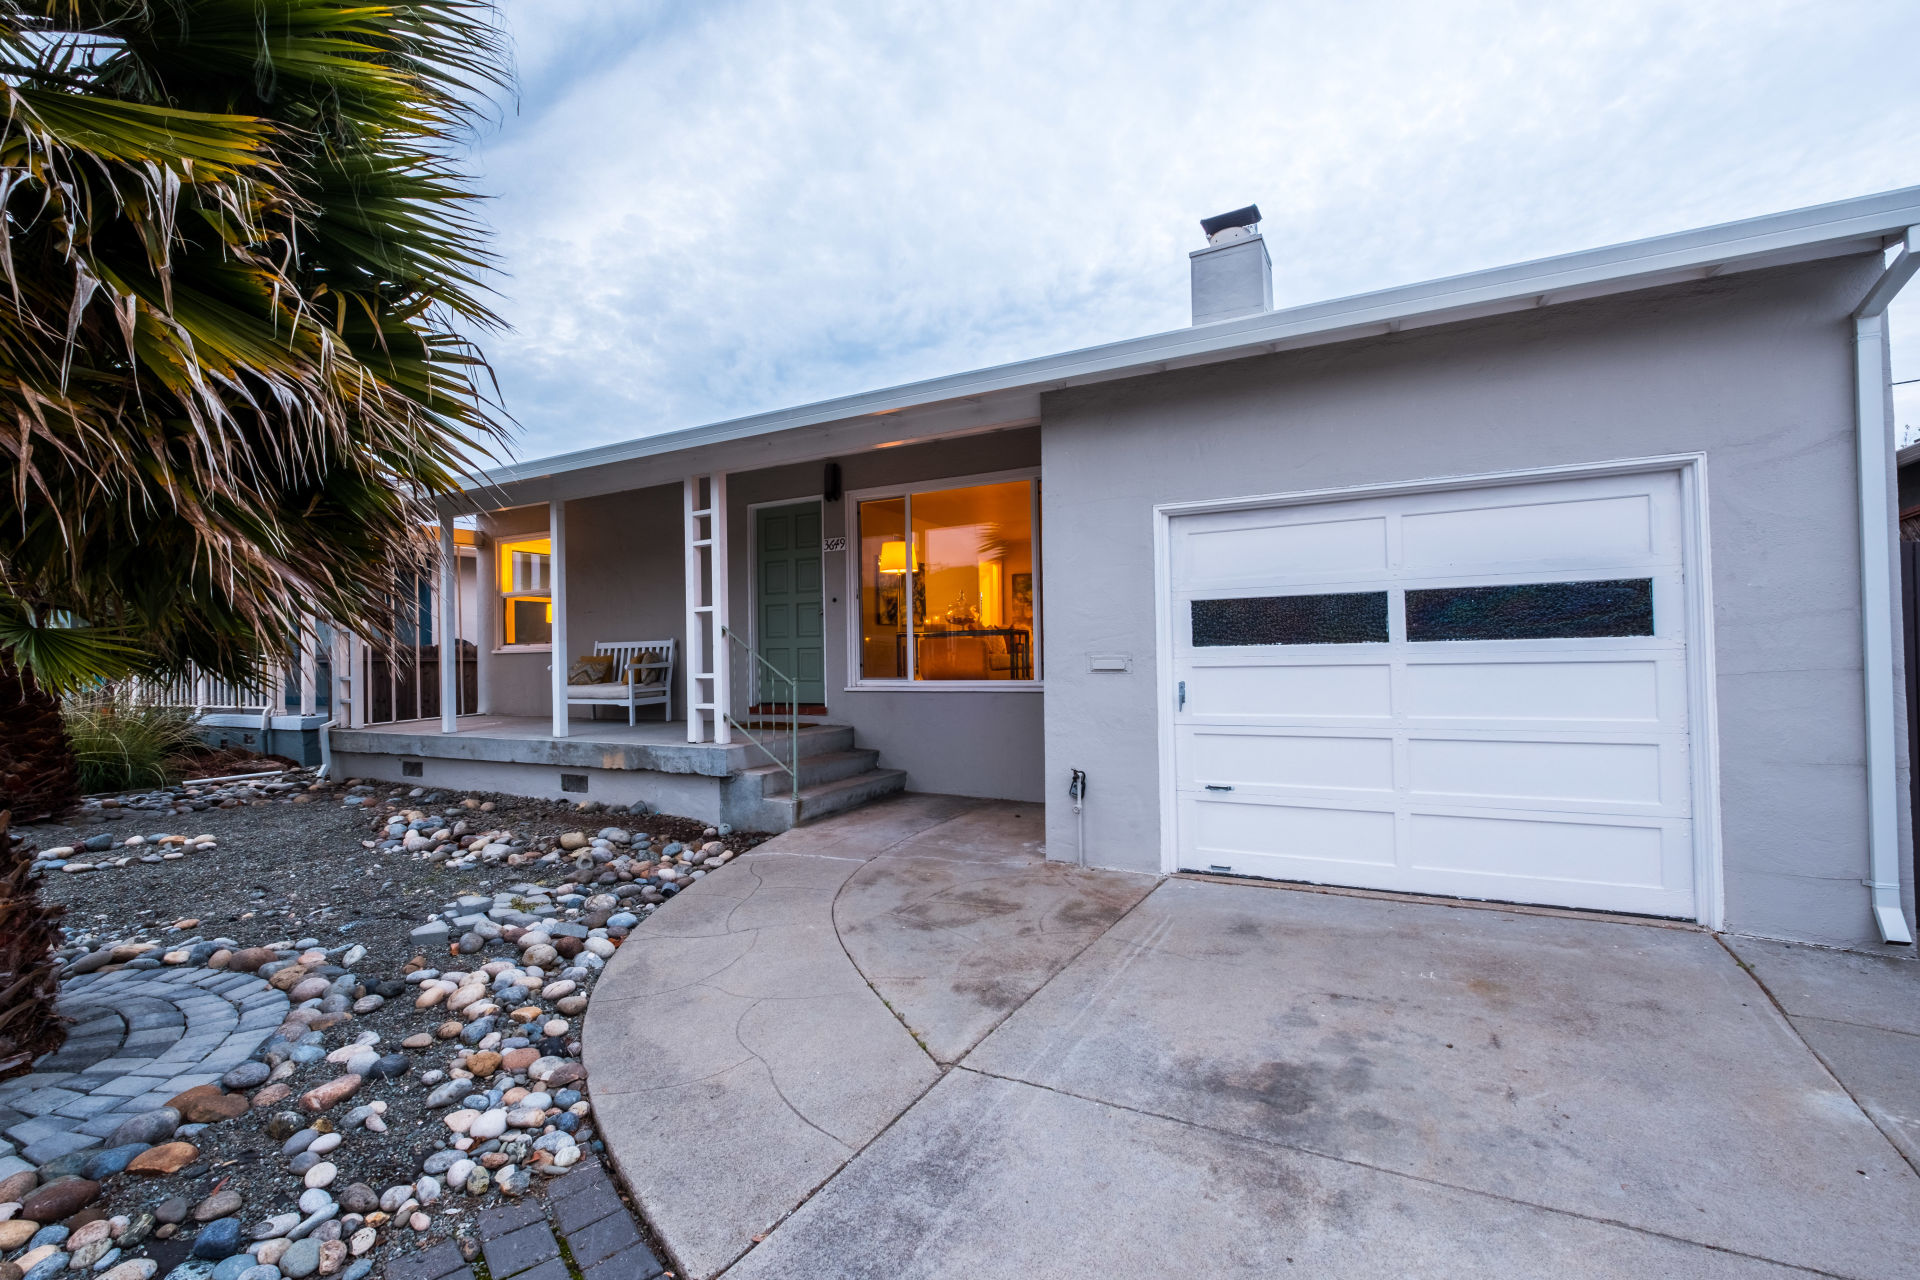 New Listing in San Mateo!